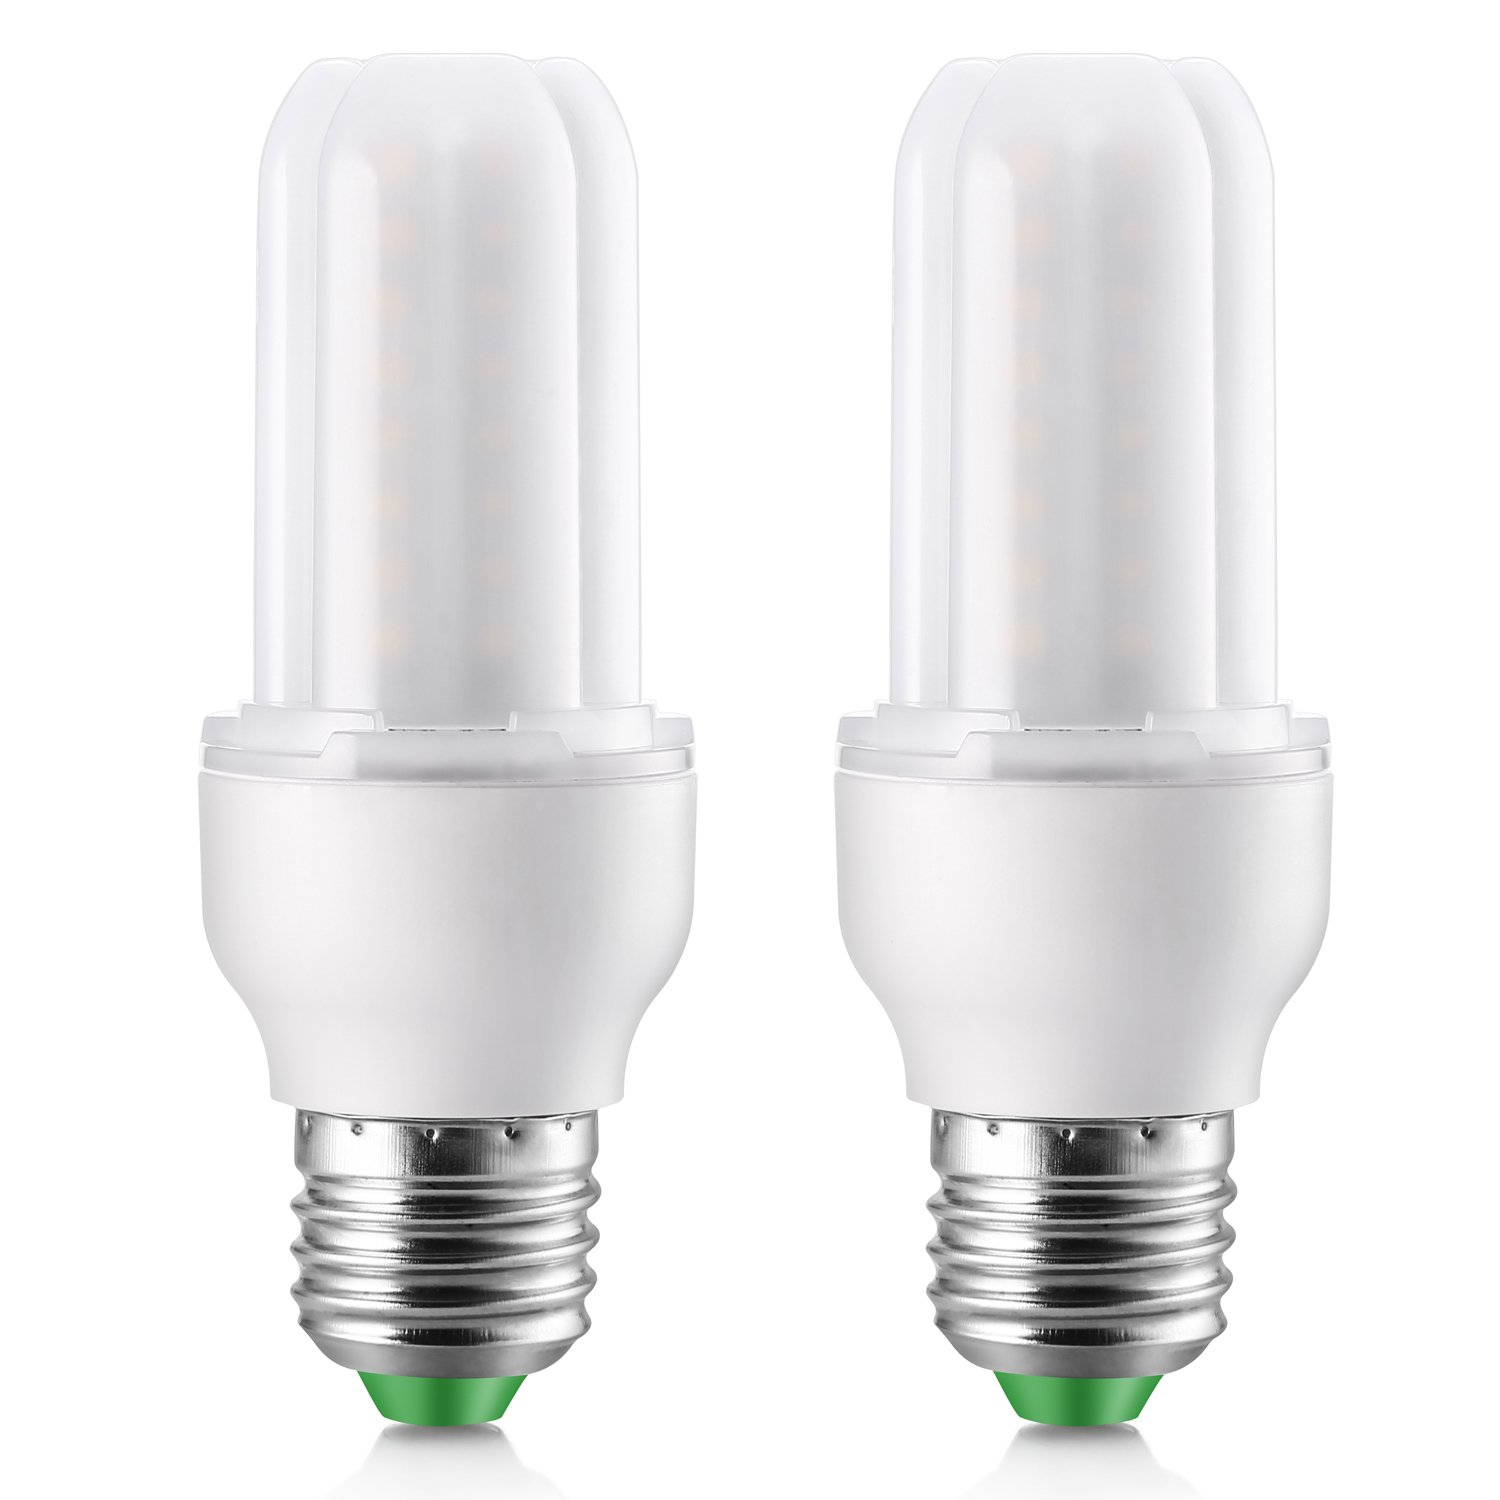 7W dimmable E26 Base 6000K Elrigs LED Light Bulb//Stick Daylight 700lm 60W Equivalent Pack of 2